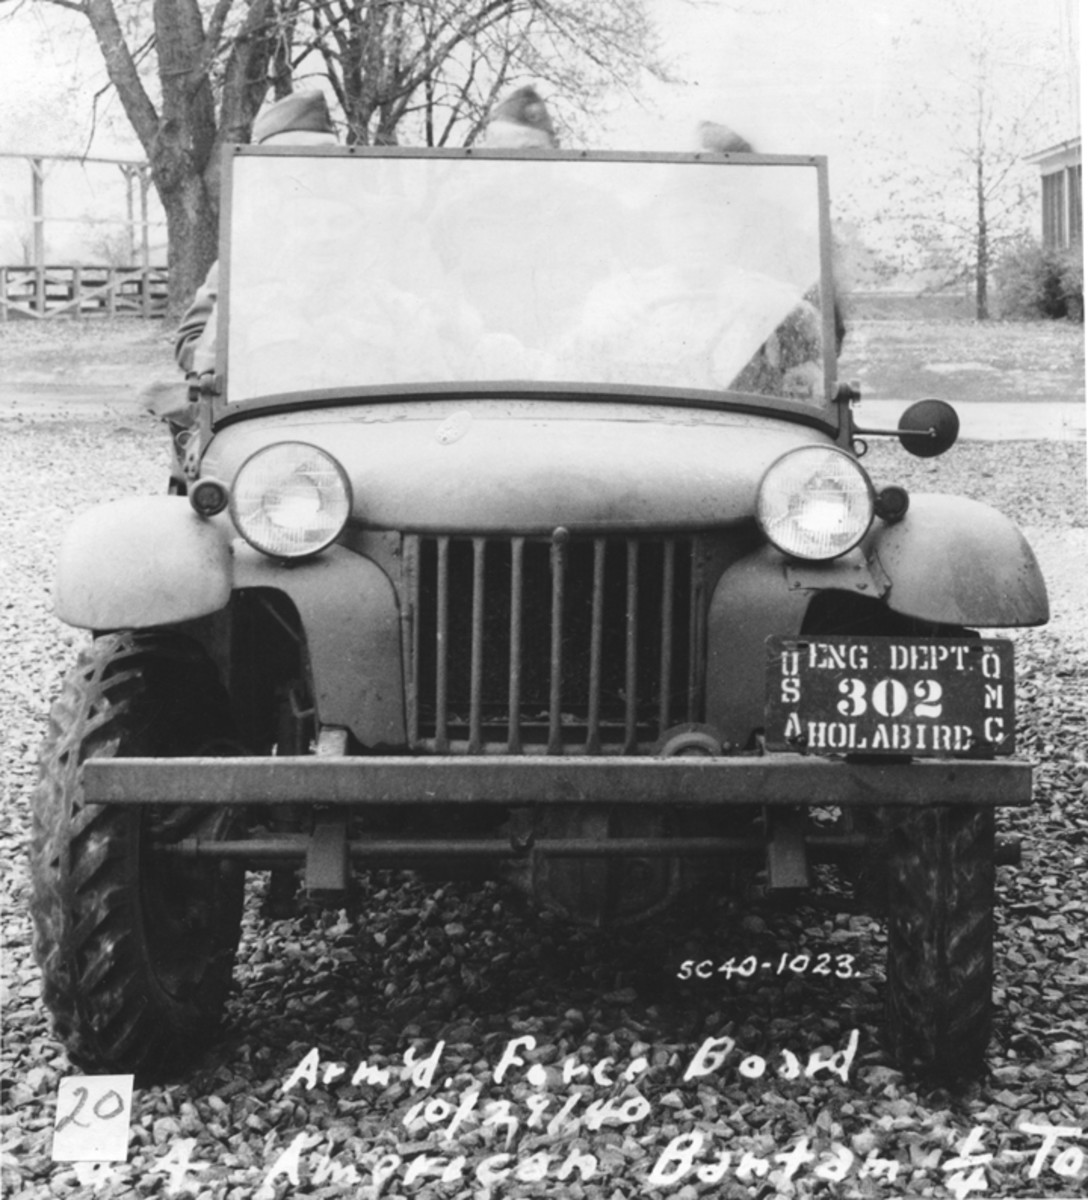 Taken at Camp Holabird, this view of the Bantam prototype clearly shows the graceful curved fenders. These soon gave way to the characteristic flat fenders.